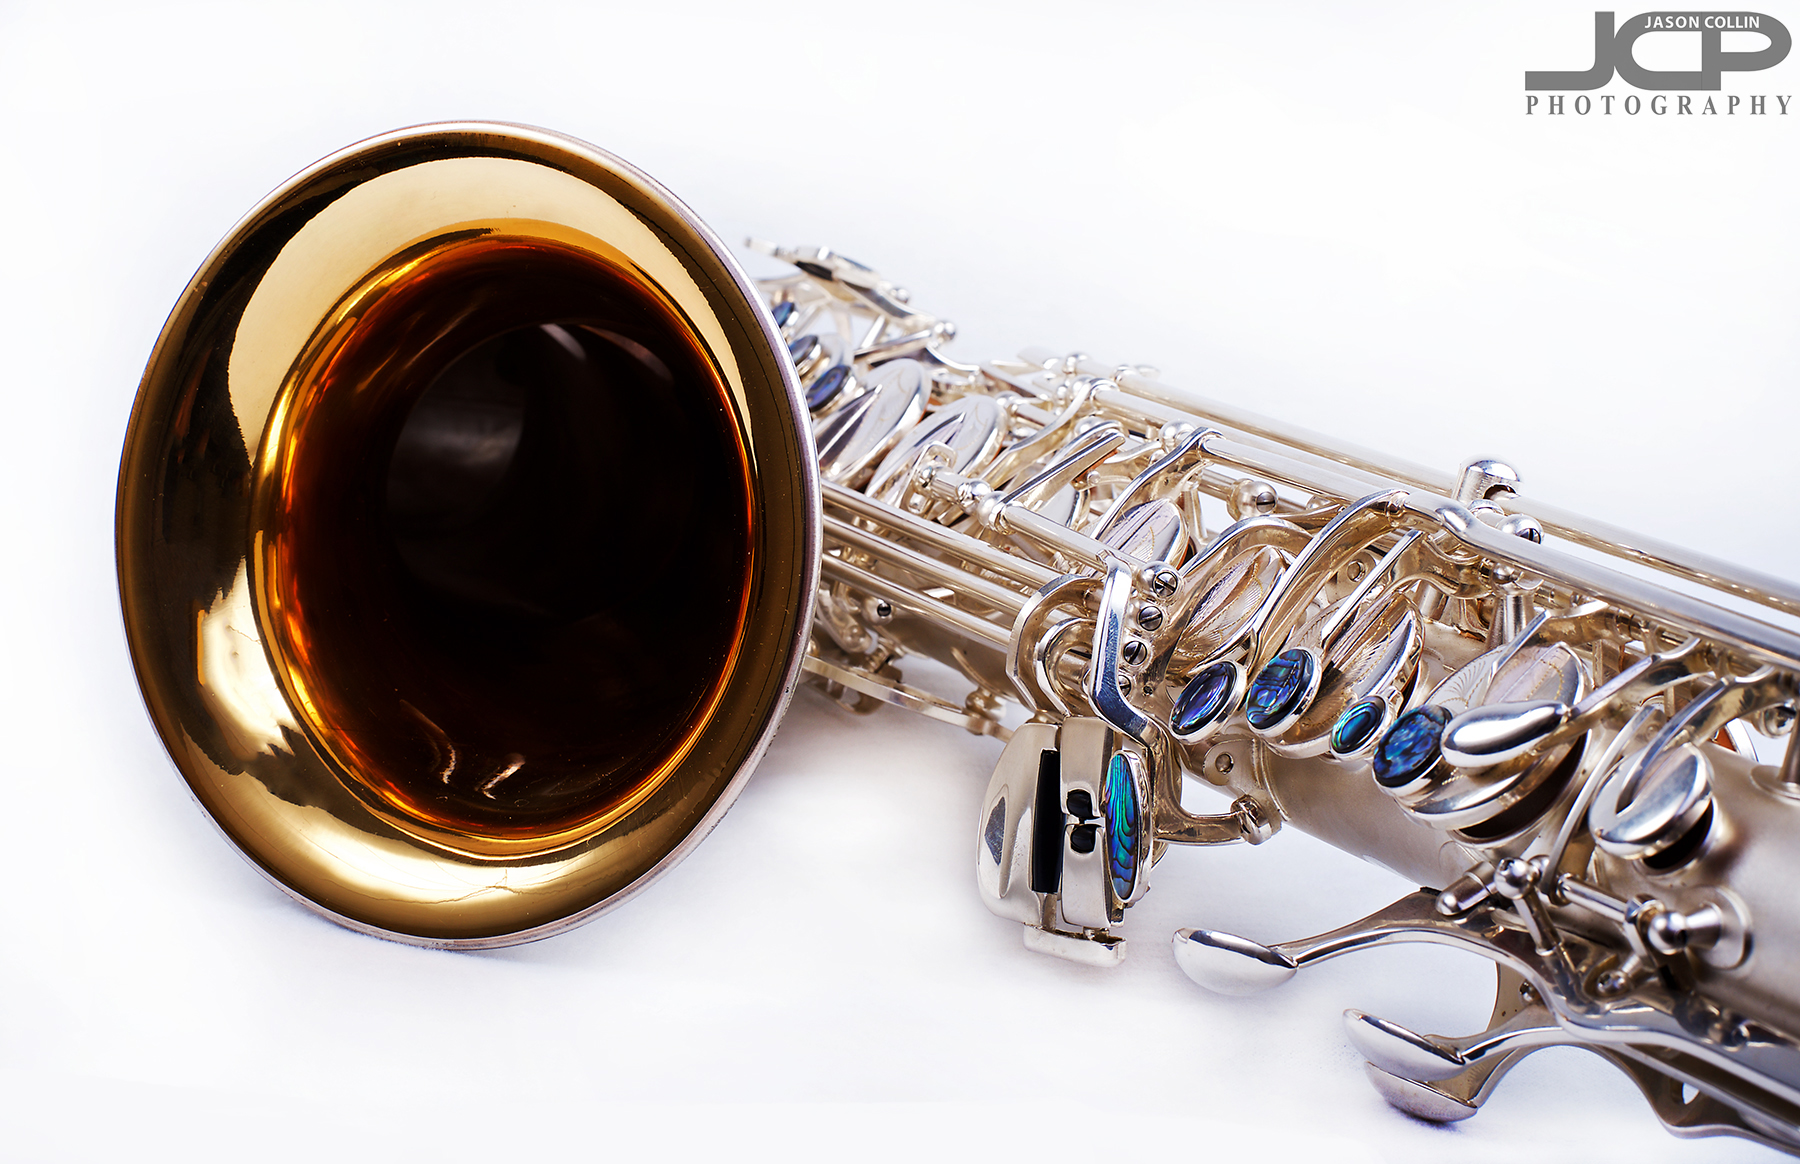 "Detailed photo of a saxophone for a client in Albuquerque New Mexico - Nikon D750 with Nikkor 50mm f/1.8G lens @ f/16 1/200th ISO 100 - Strobist: Westcott Strobe Light Plus in 55"" octagon gridded soft box main with two 43"" shoot through umbrellas with speedlights on the white muslin background"